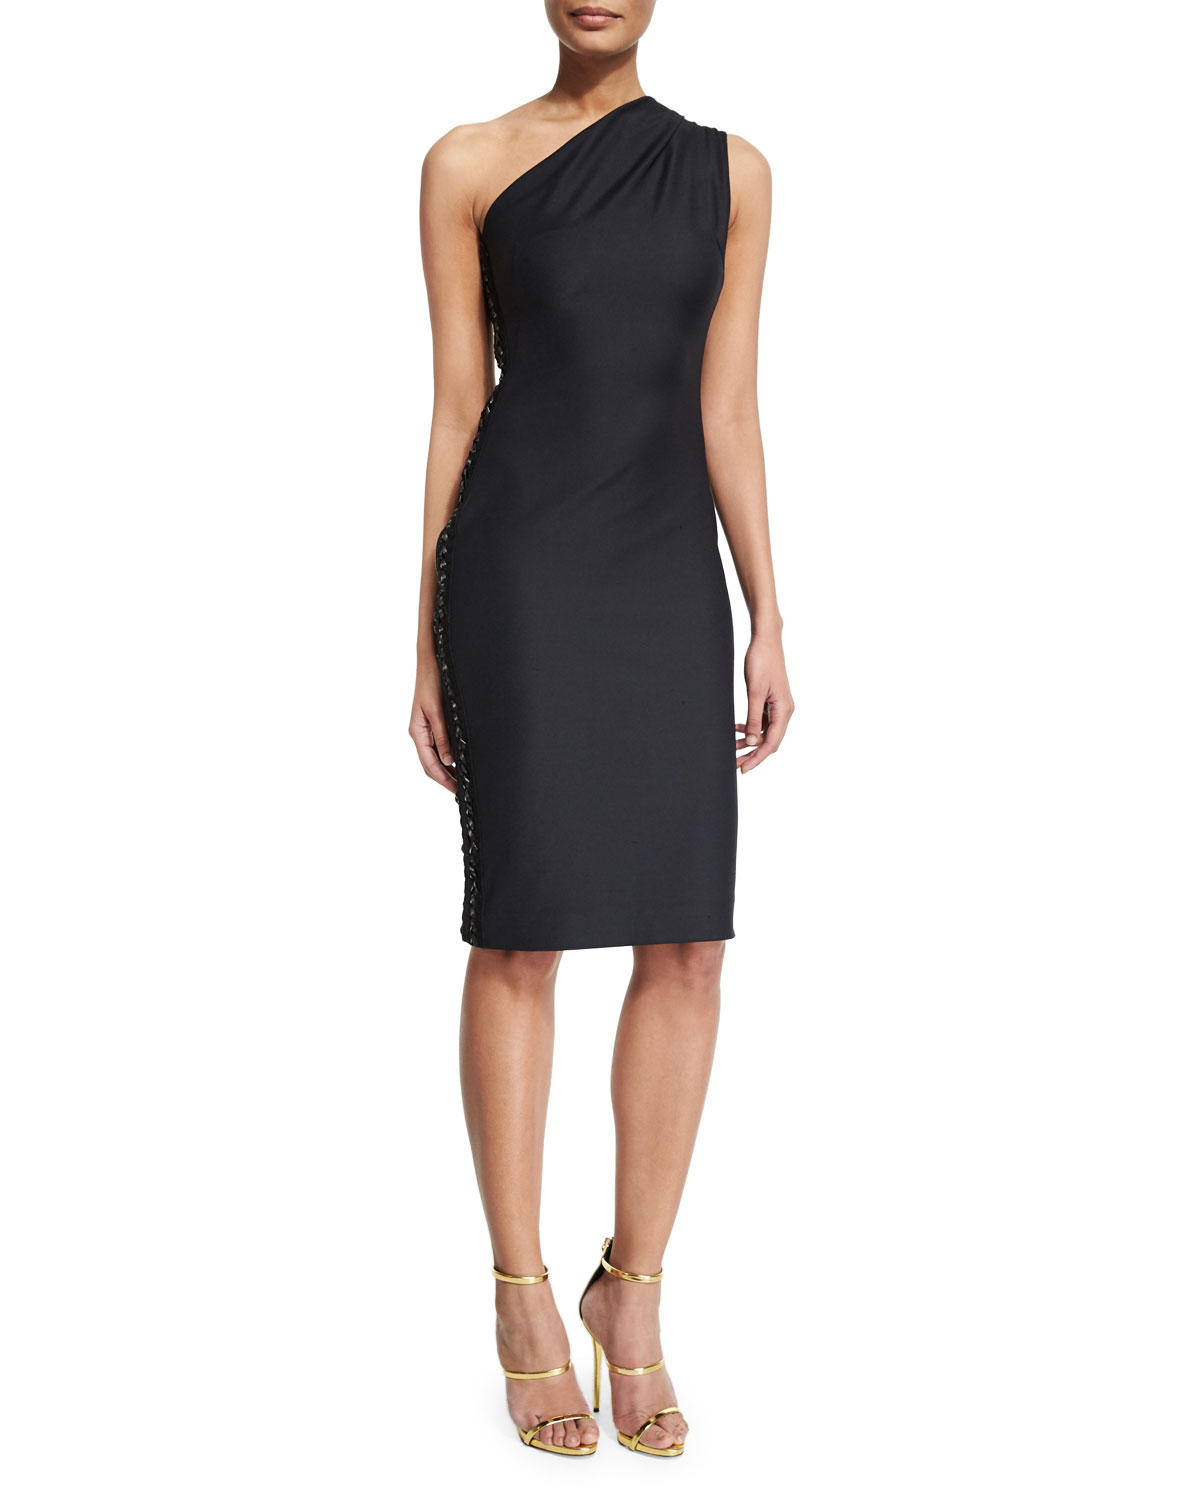 Mila One-Shoulder Cocktail Dress, Black